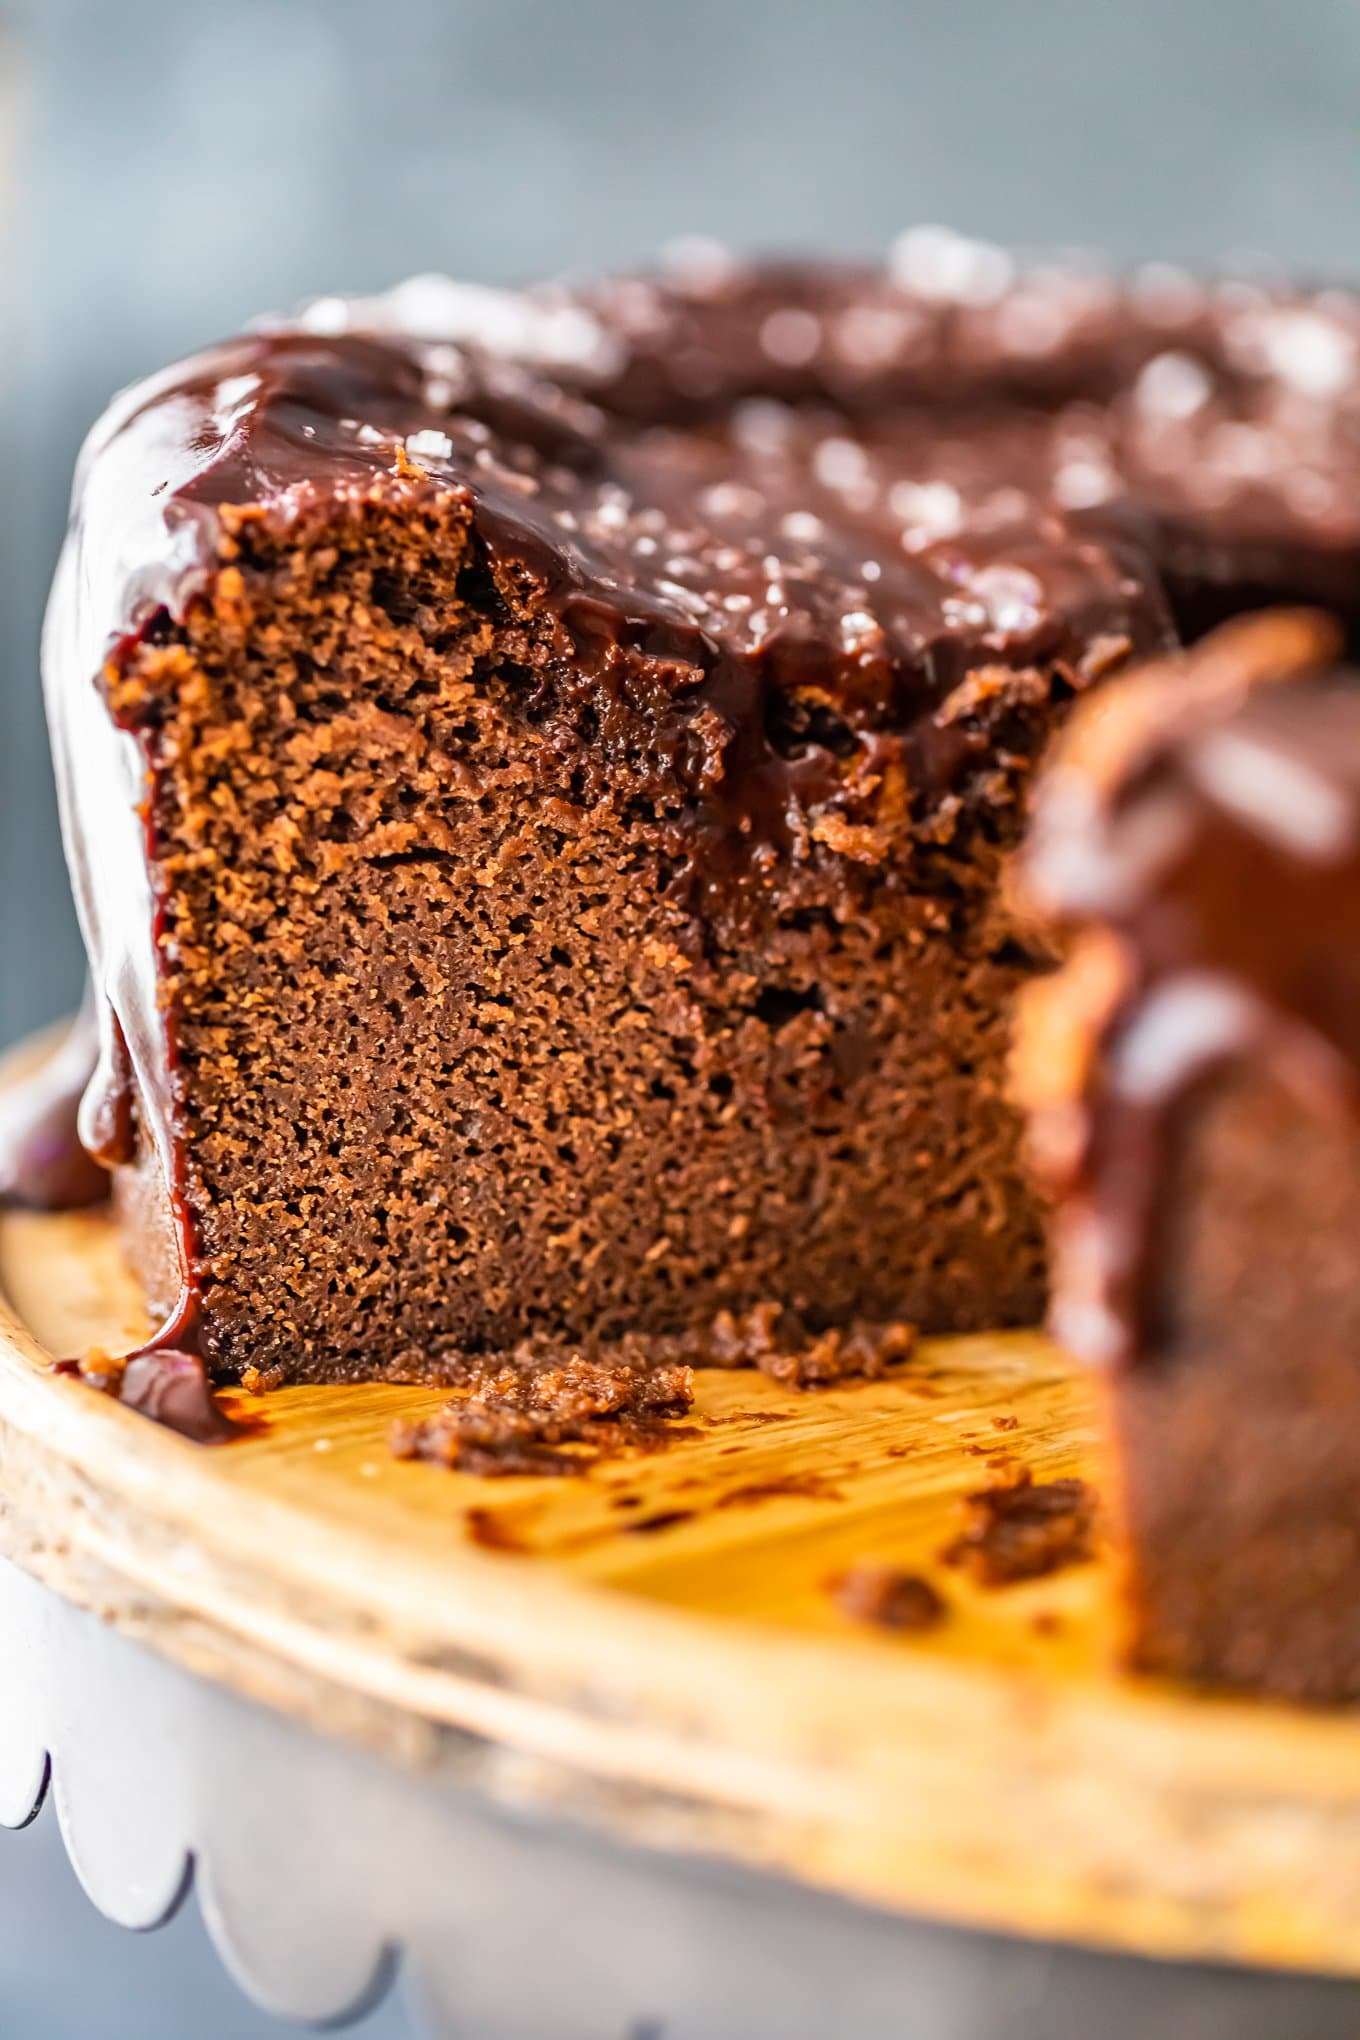 Velvet Chocolate Cake Recipe With Chocolate Ganache Icing